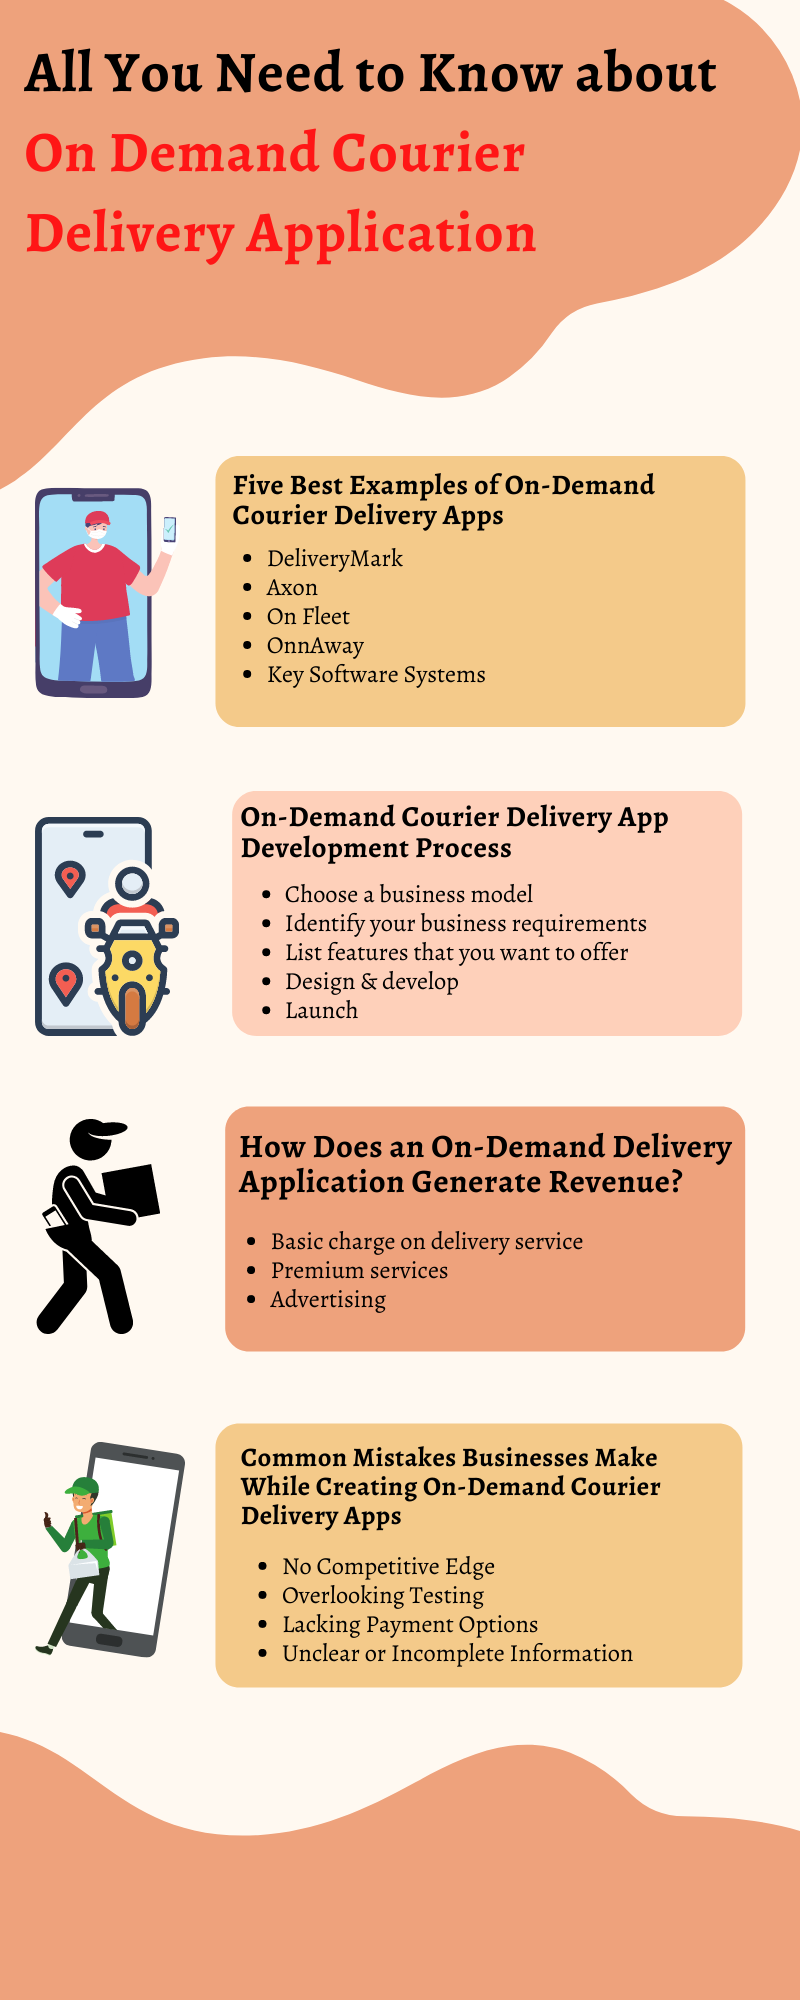 All You Need to Know about On-demand Courier Delivery-Application